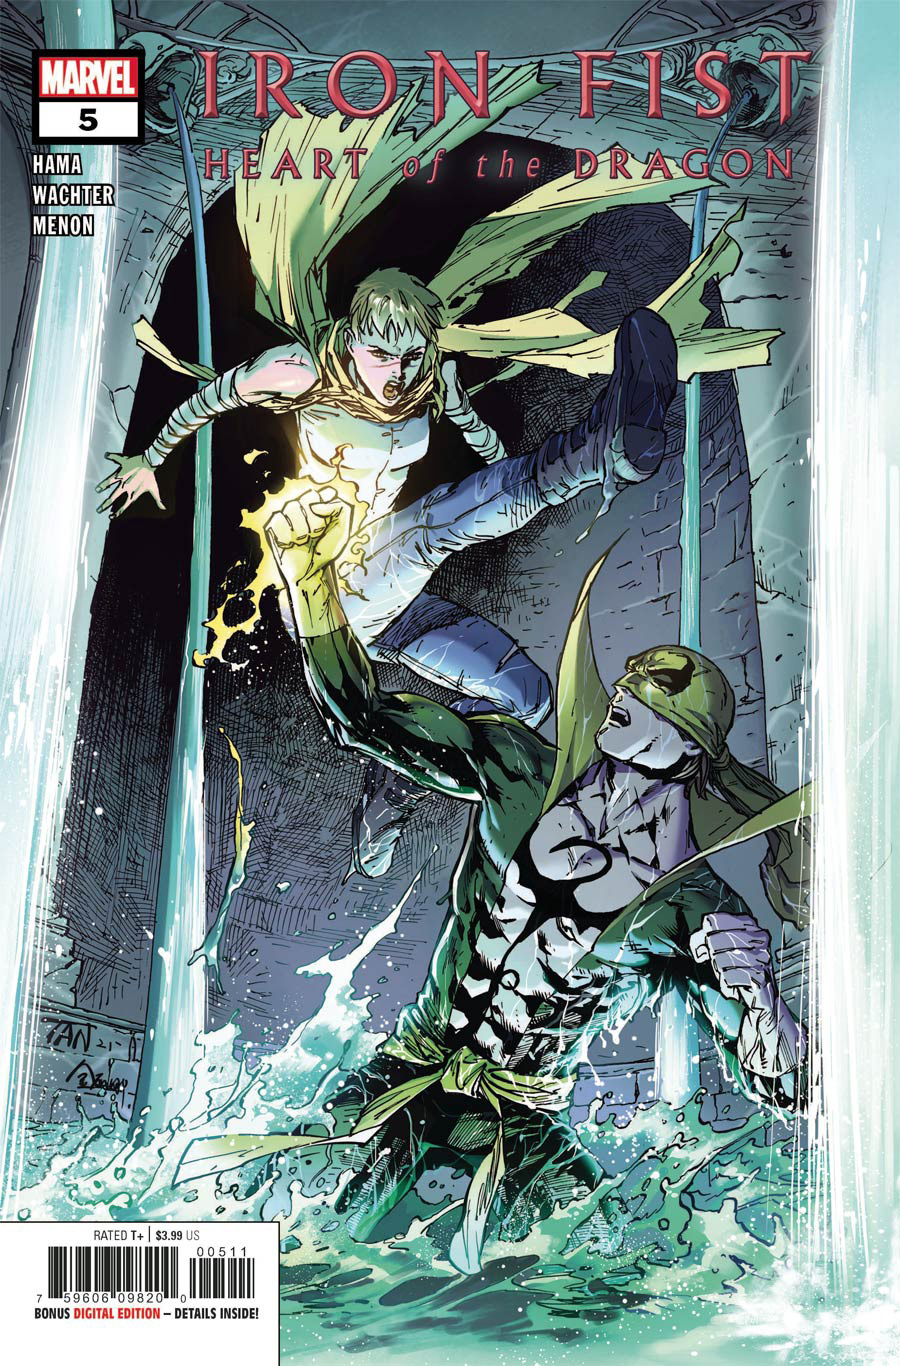 Iron Fist Heart Of The Dragon #5 Cover A Regular Billy Tan Cover (Limit 1 Per Customer)